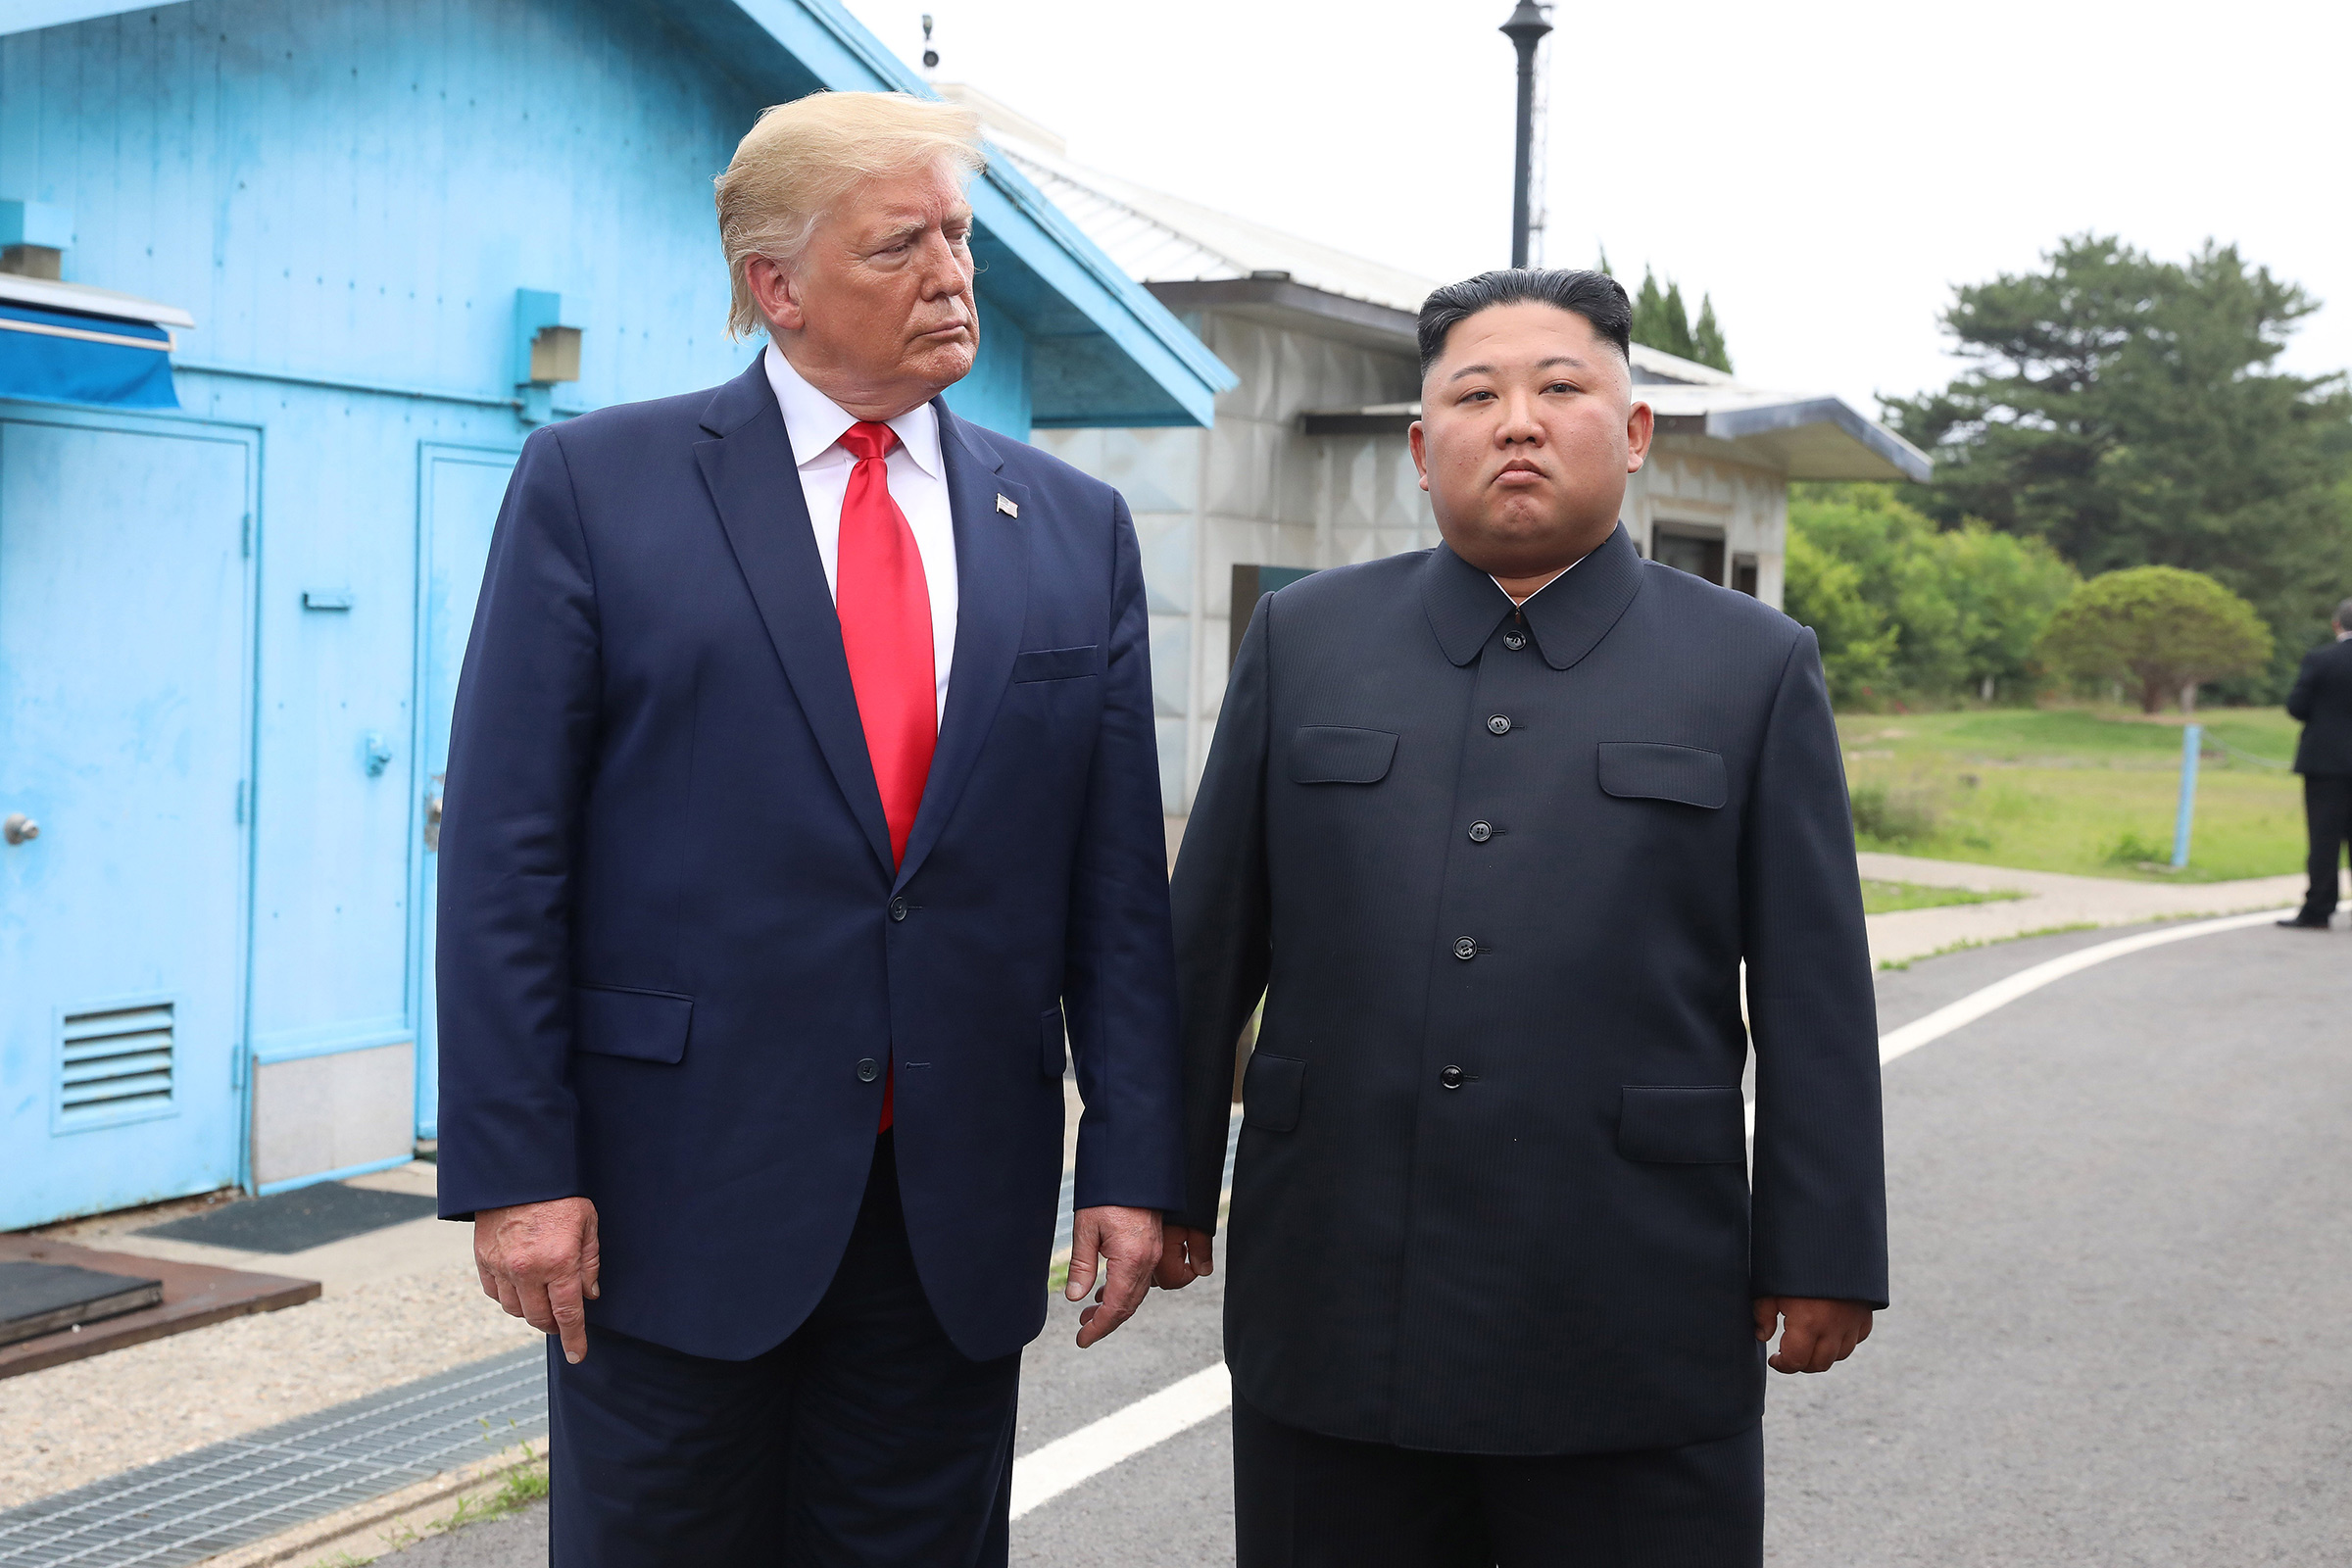 North Korean leader Kim Jong Un and U.S. President Donald Trump meet inside the demilitarized zone separating South and North Korea in Panmunjom, South Korea, June 30, 2019.